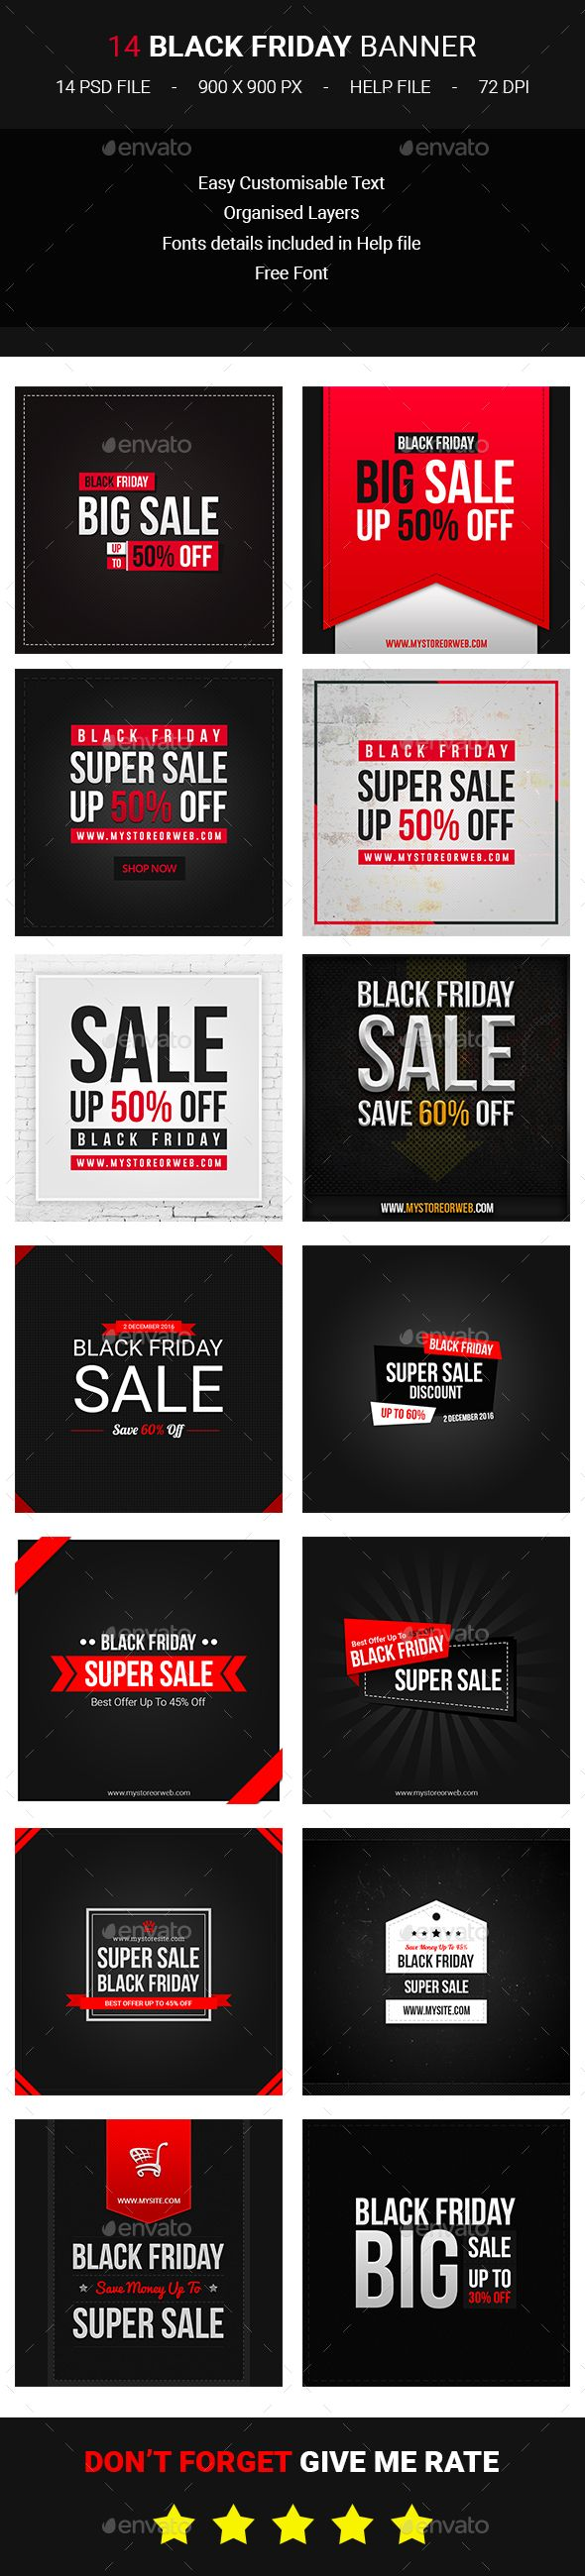 14 Black Friday Banners Template PSD